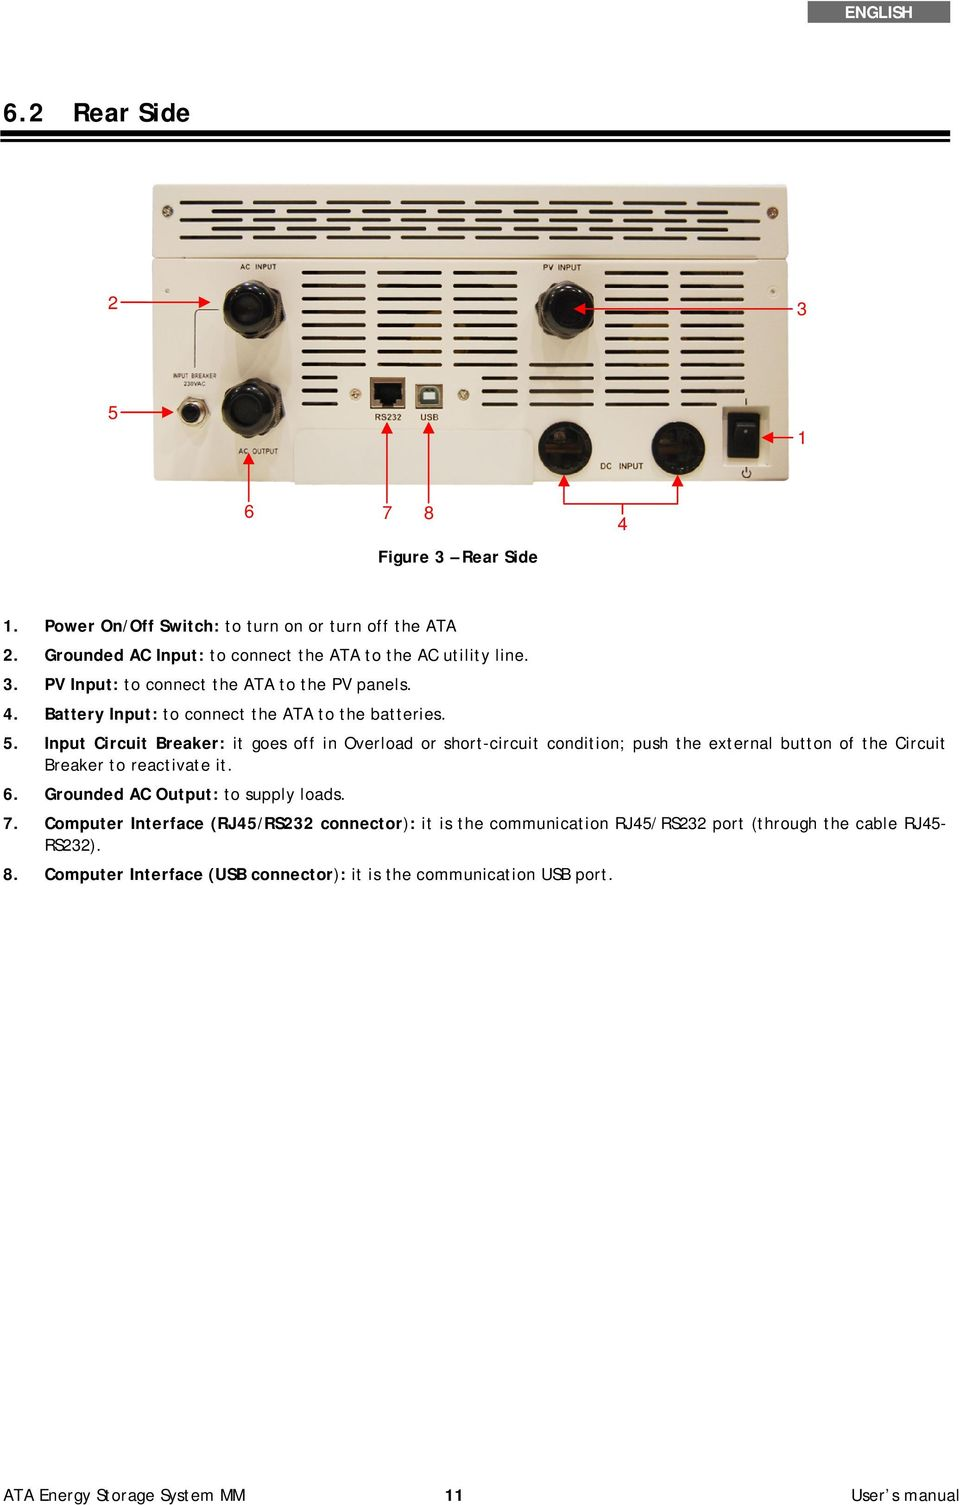 Input Circuit Breaker: it goes off in Overload or short-circuit condition; push the external button of the Circuit Breaker to reactivate it. 6.